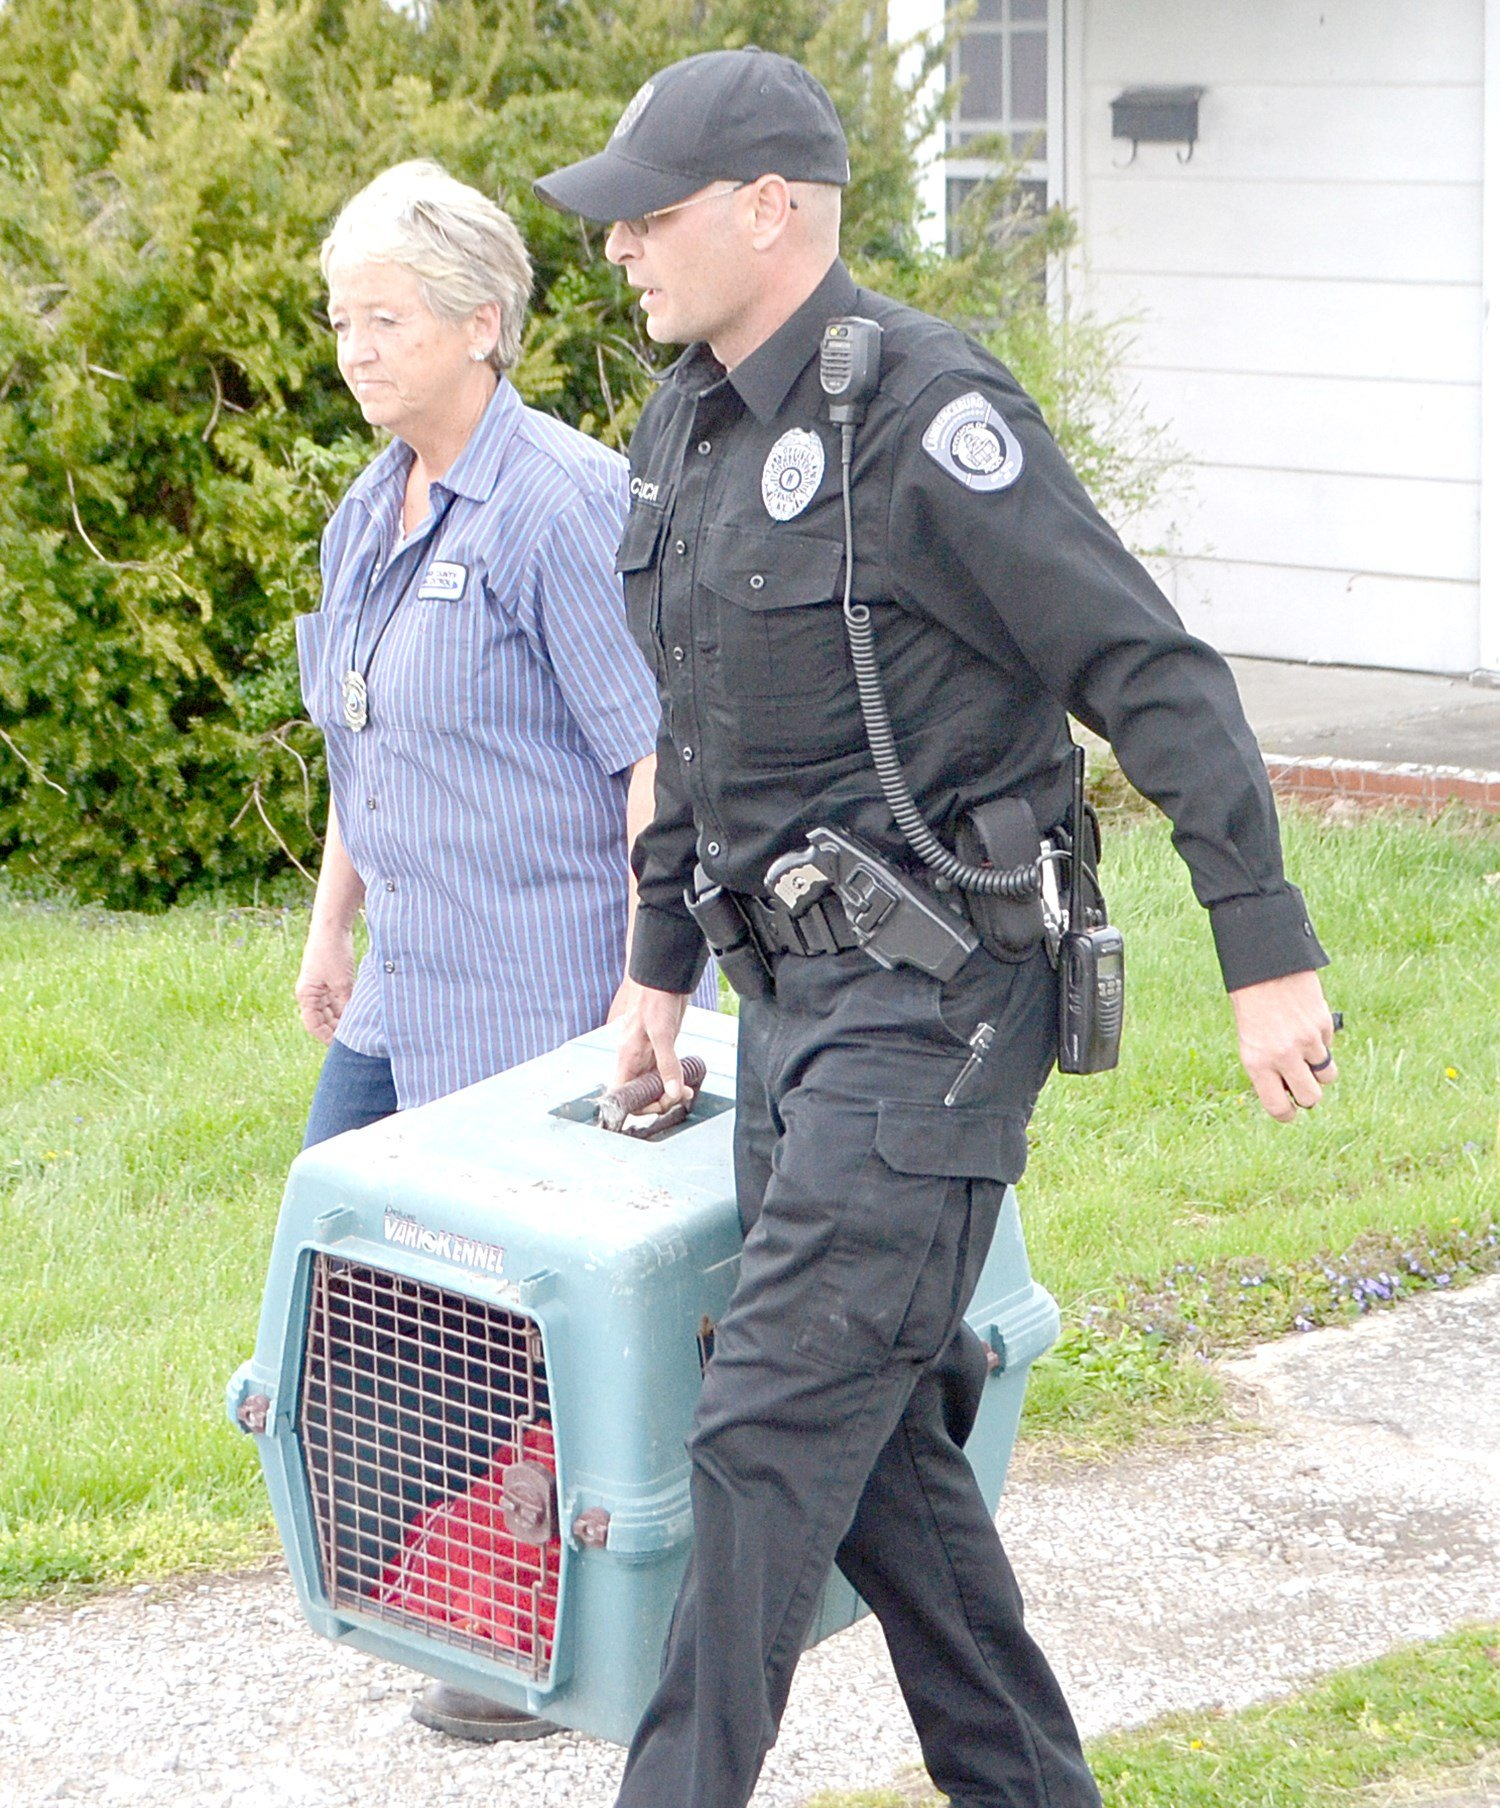 Officers carry the remains of the deceased dog from the residence of Howard Tinnell. Courtesy Anderson News